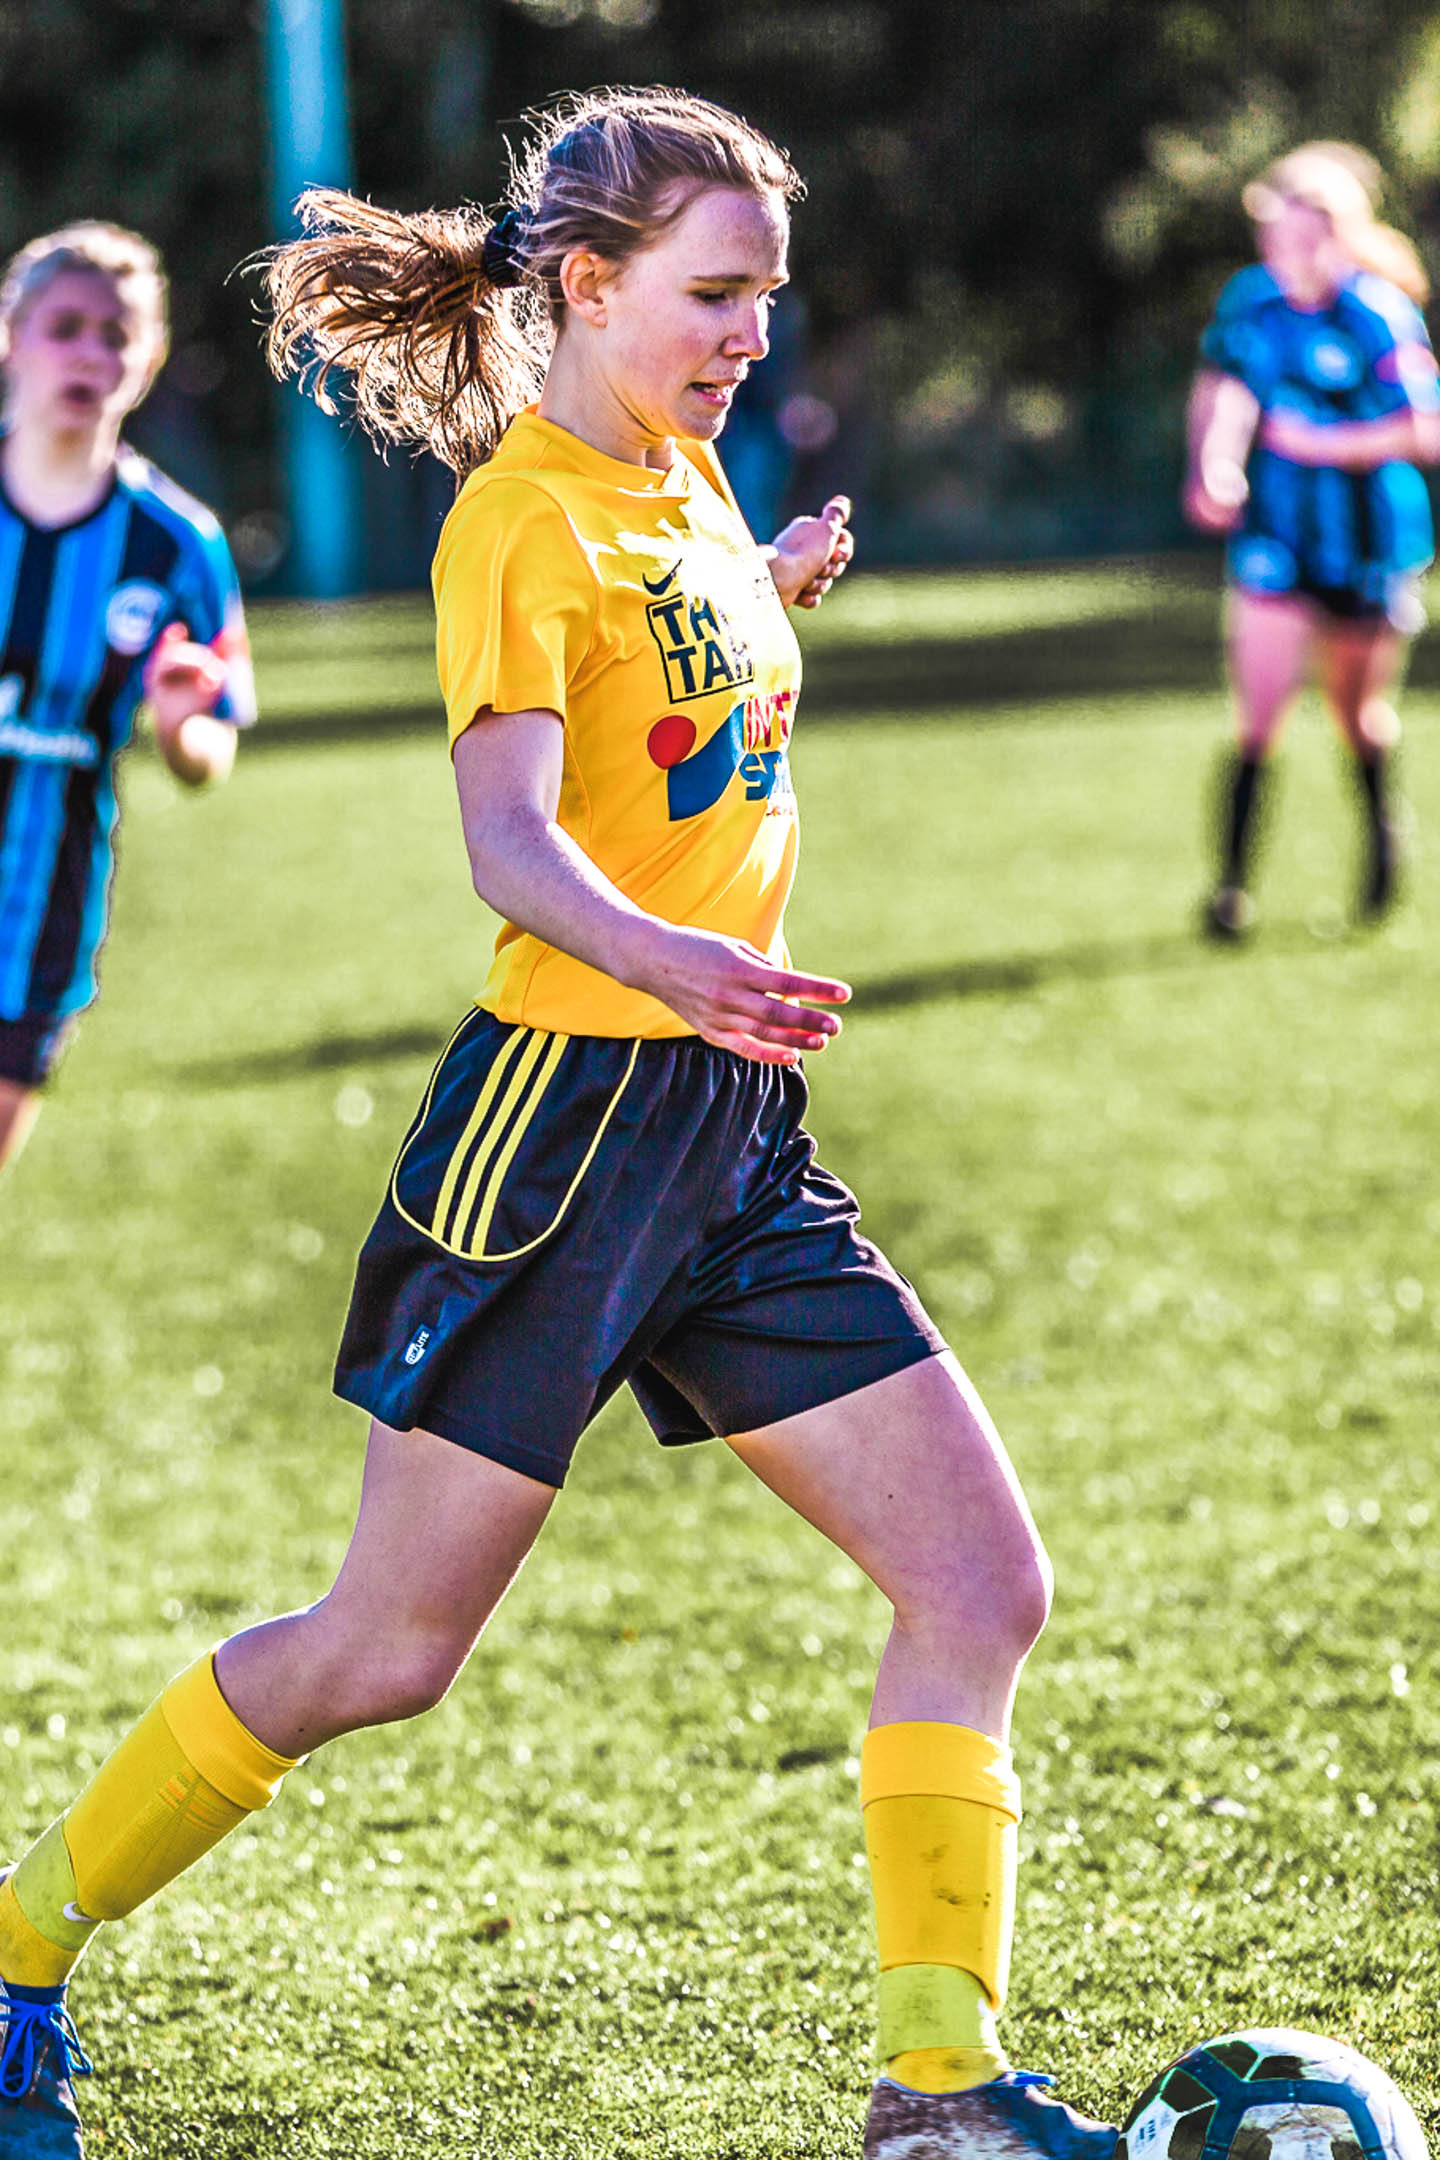 A senior women's player running with the ball